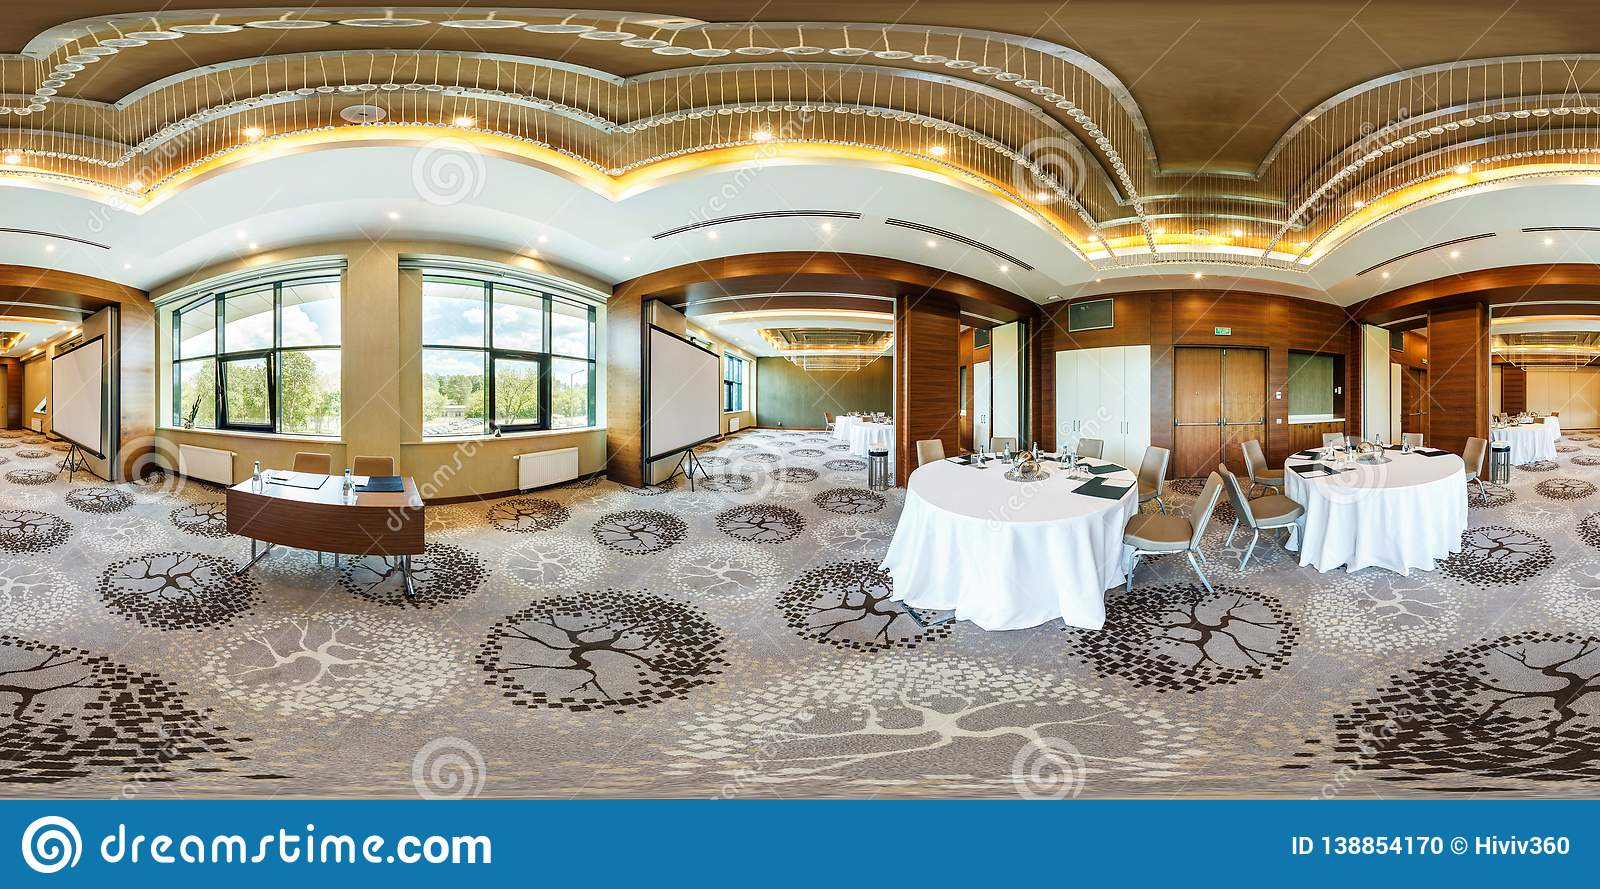 MINSK, BELARUS - JULY, 2017: panorama 360 angle view in interior of luxury empty conference hall for business meetings with